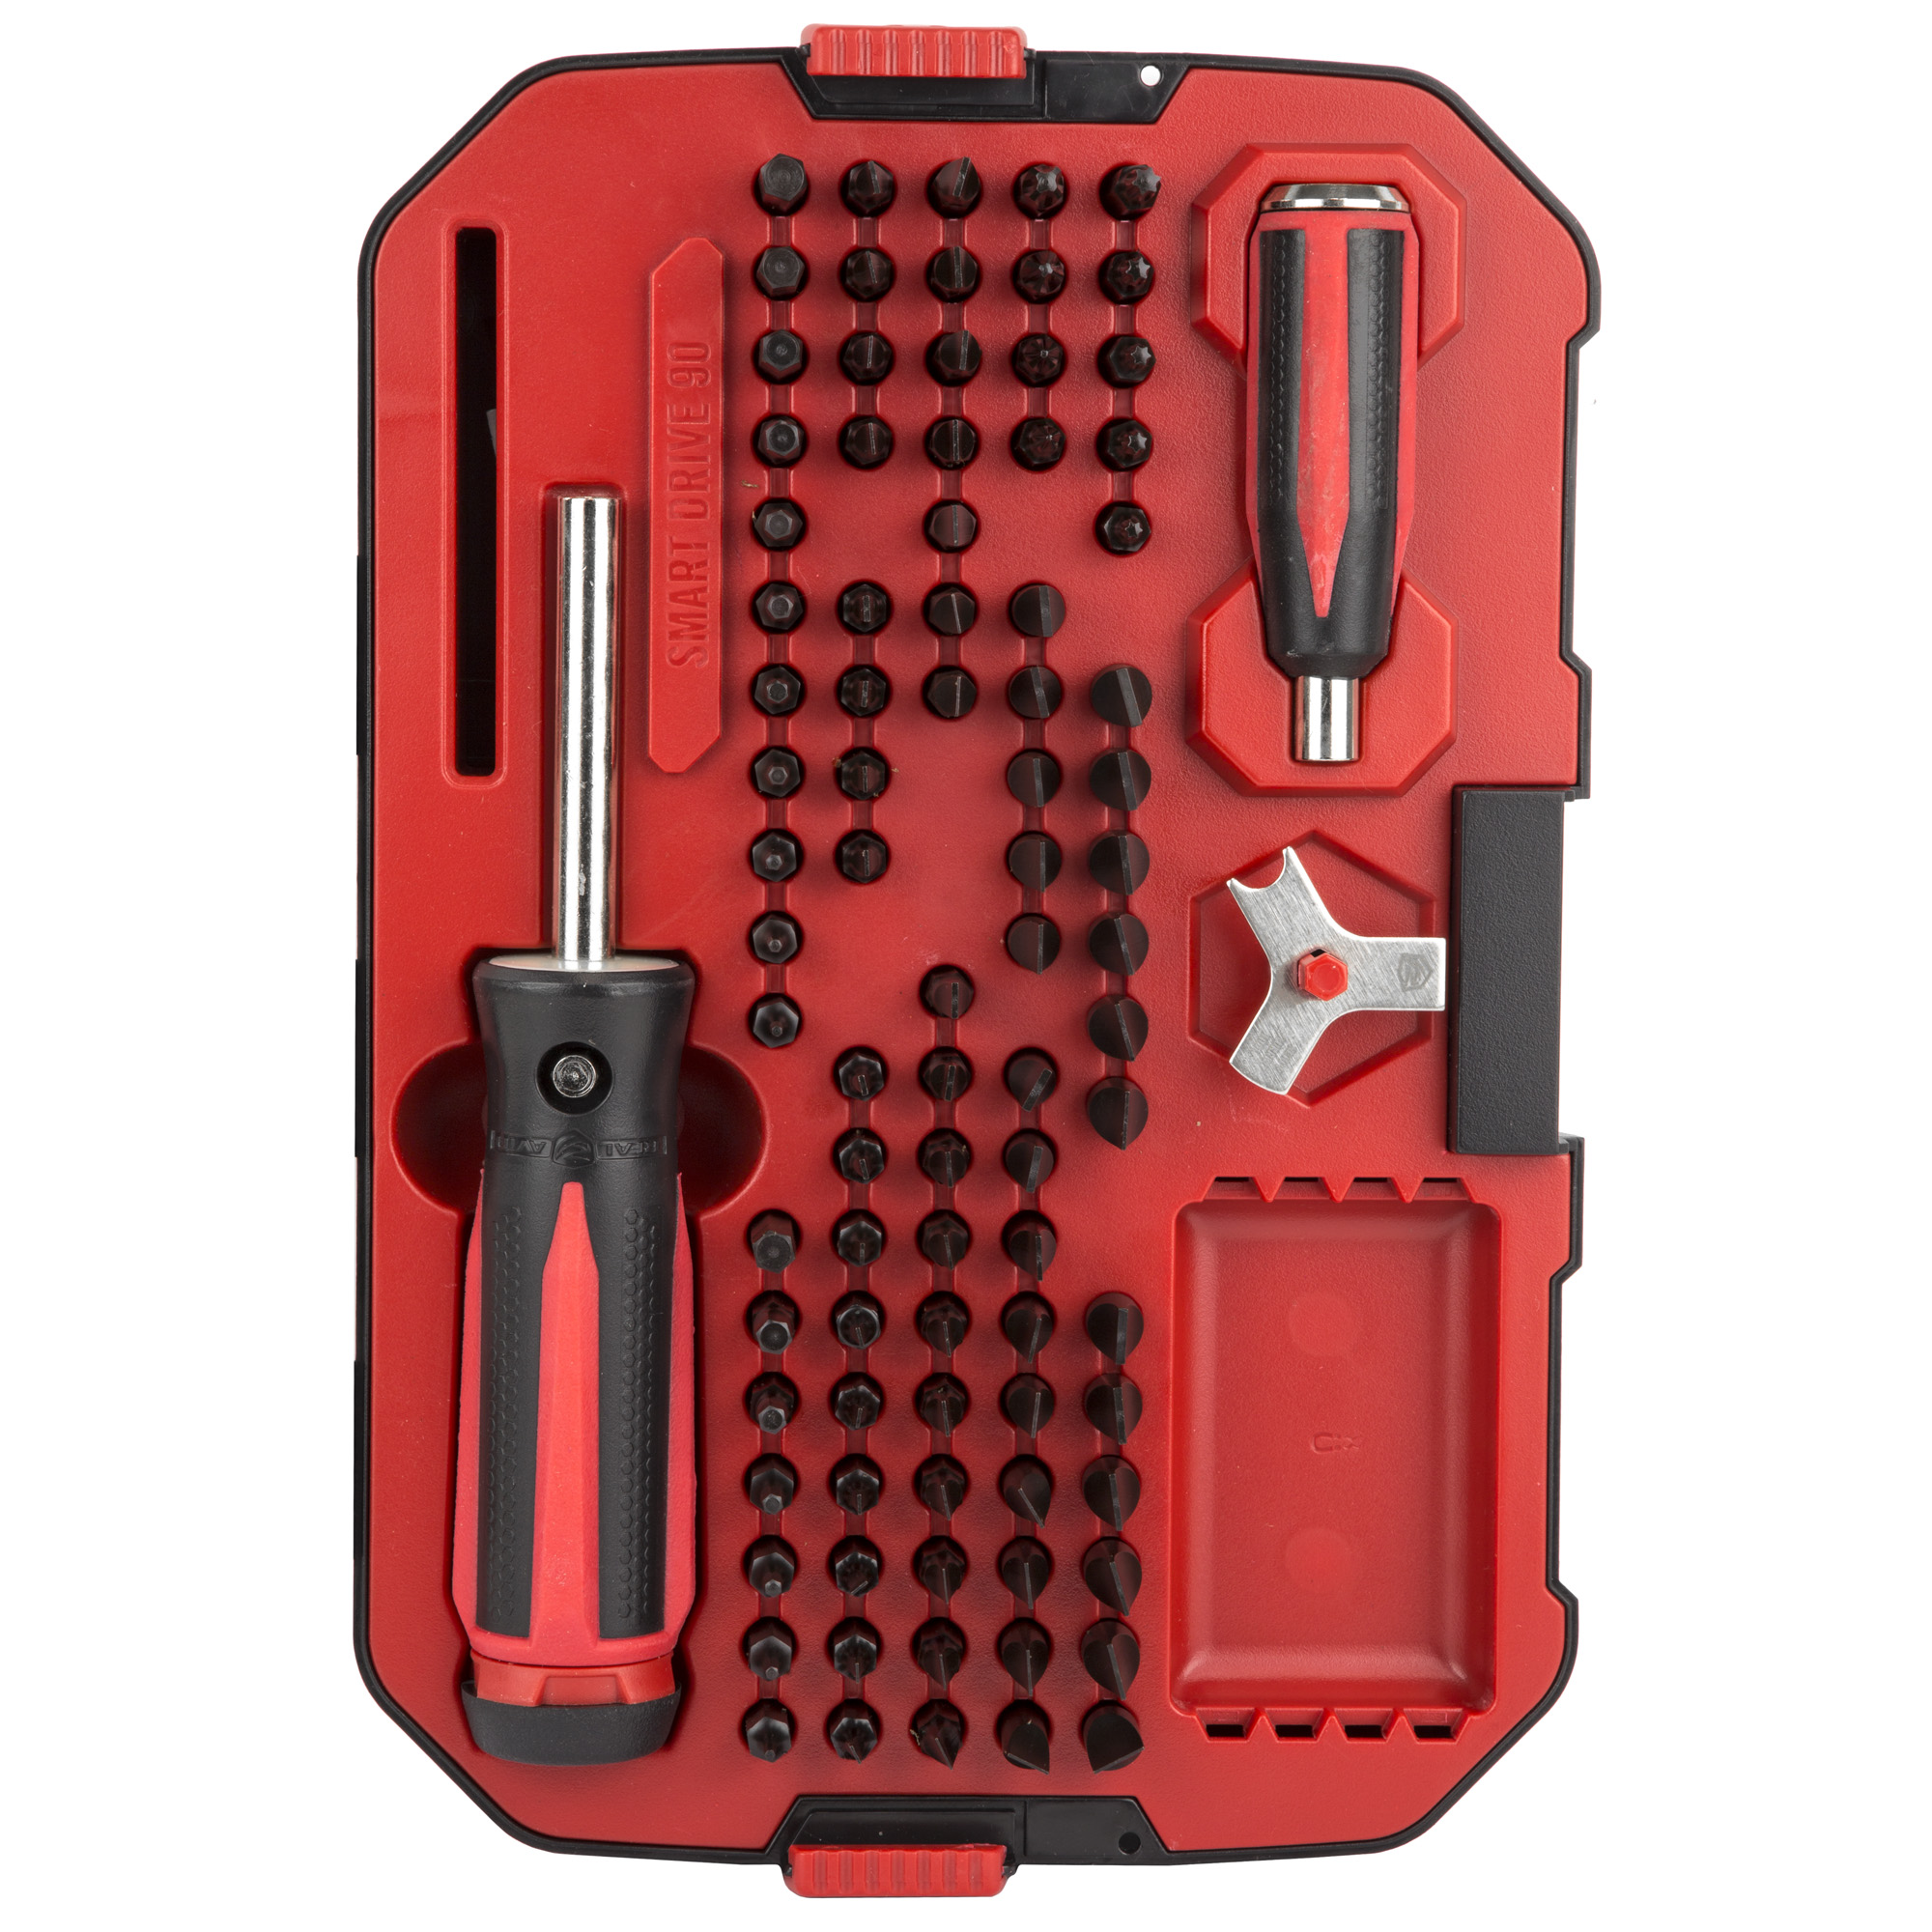 "Smart Drive 90 is an advanced gunsmithing driver set. The main driver features a magnetic bit holder"" rubber grip"" jeweler's spin top & 360 degree LED light. It partners with the small ""close quarters"" driver to create Force Assist. Force Assist is a proprietary system that helps users to loosen frozen-in-place screws as well as precisely tighten screws."